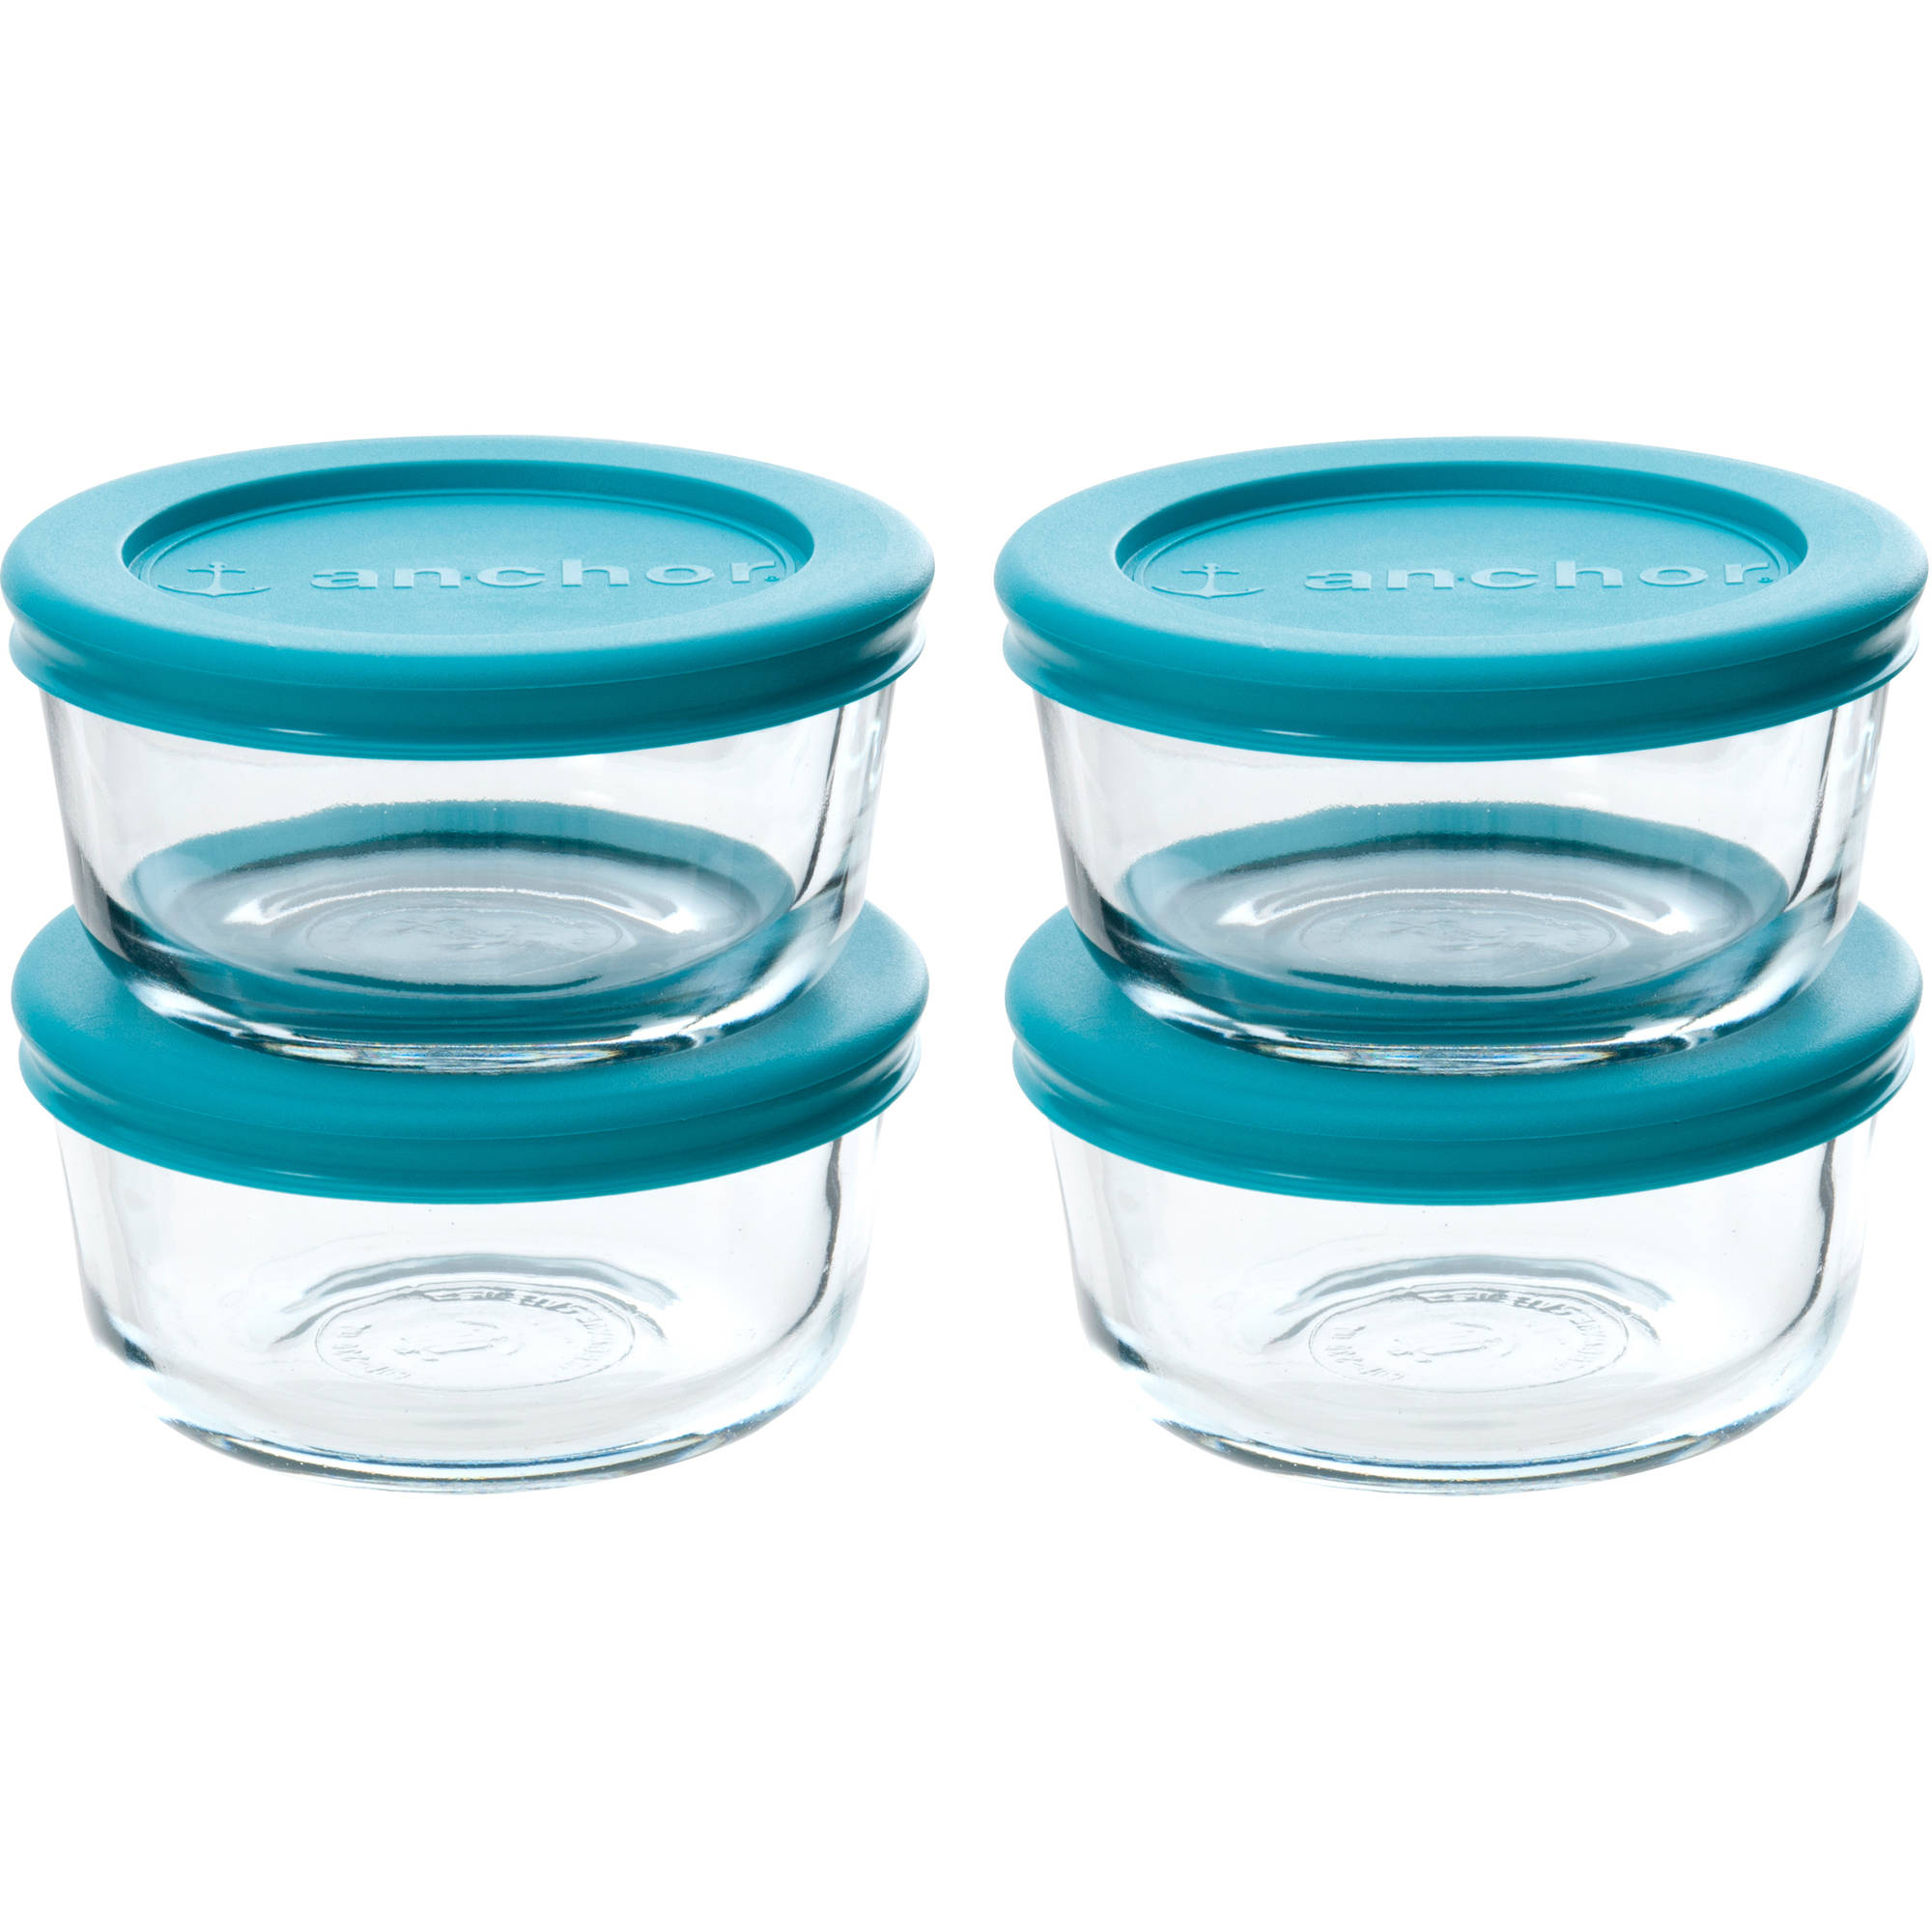 Anchor Hocking 8pc 1c Round Food Storage Value Pack w/ Teal Lids